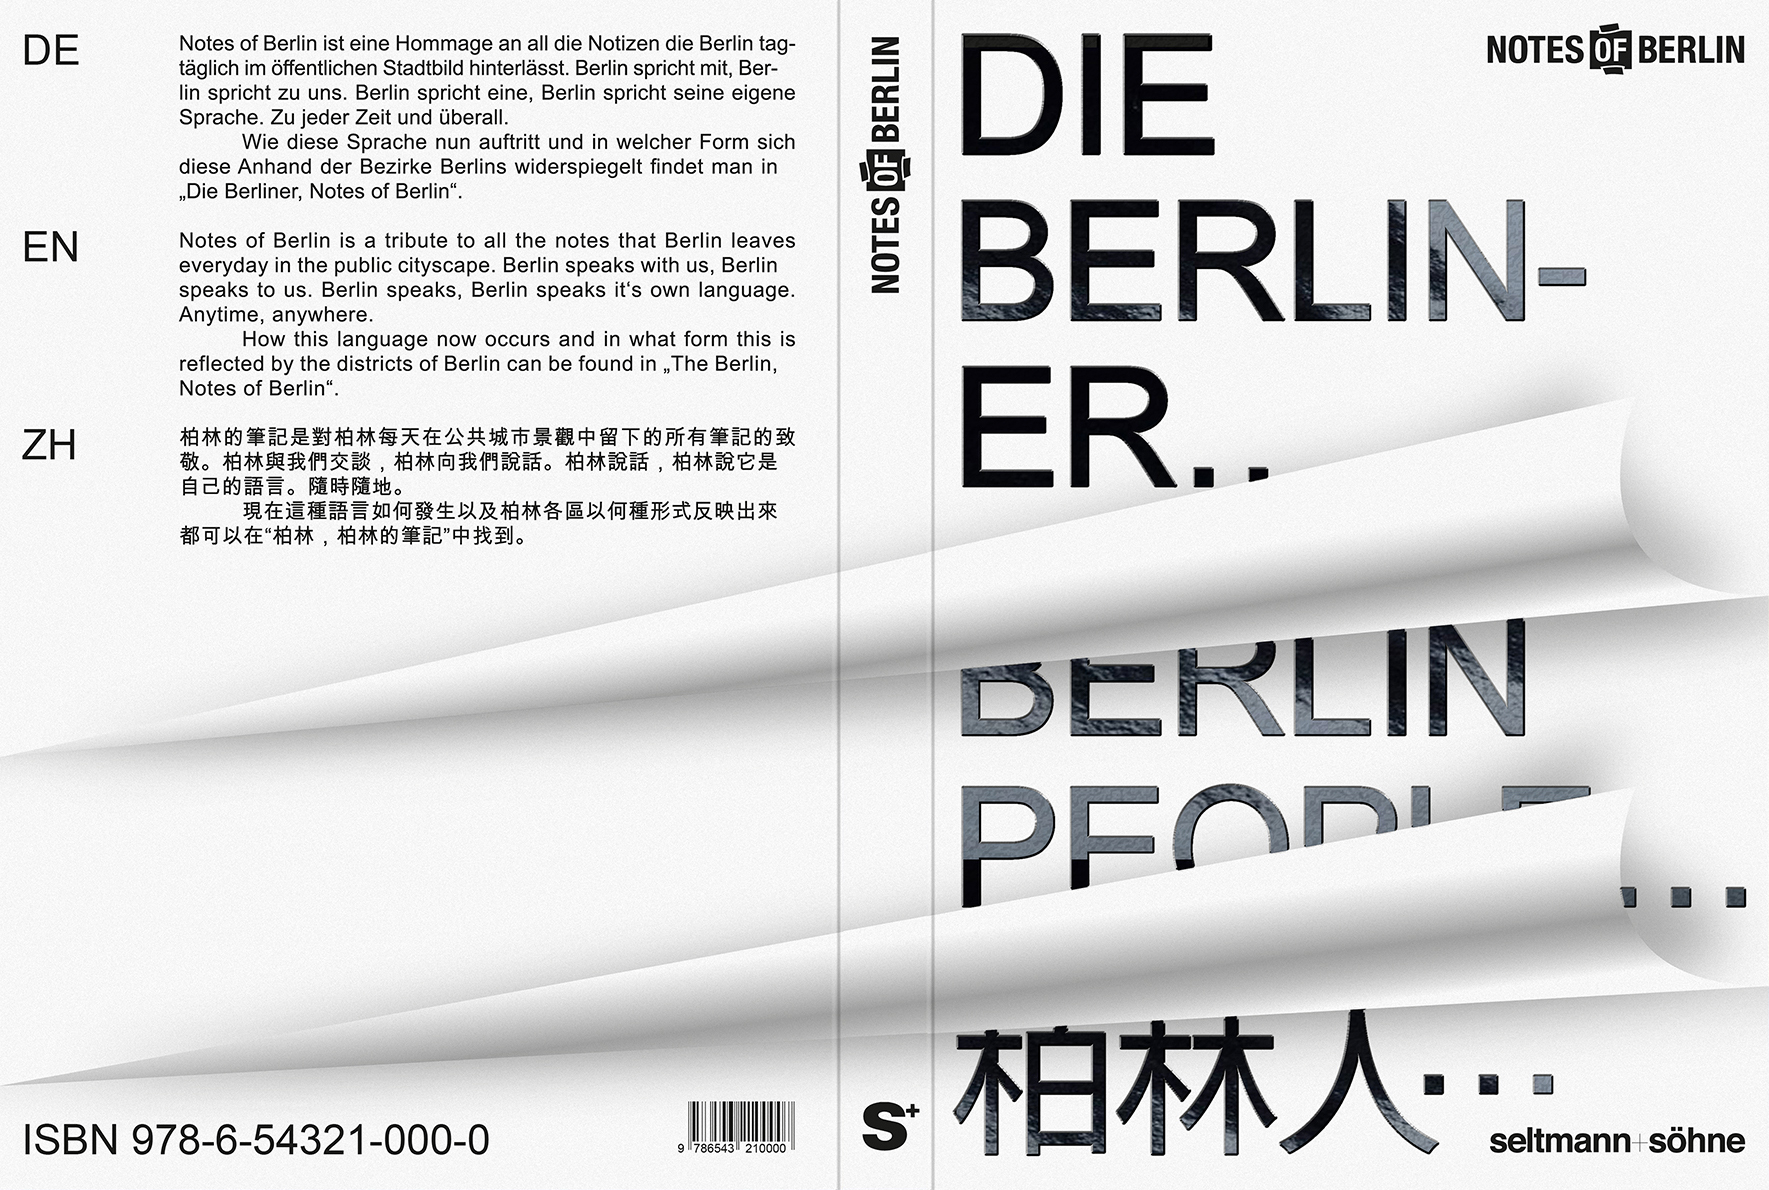 Notes of Berlin Book